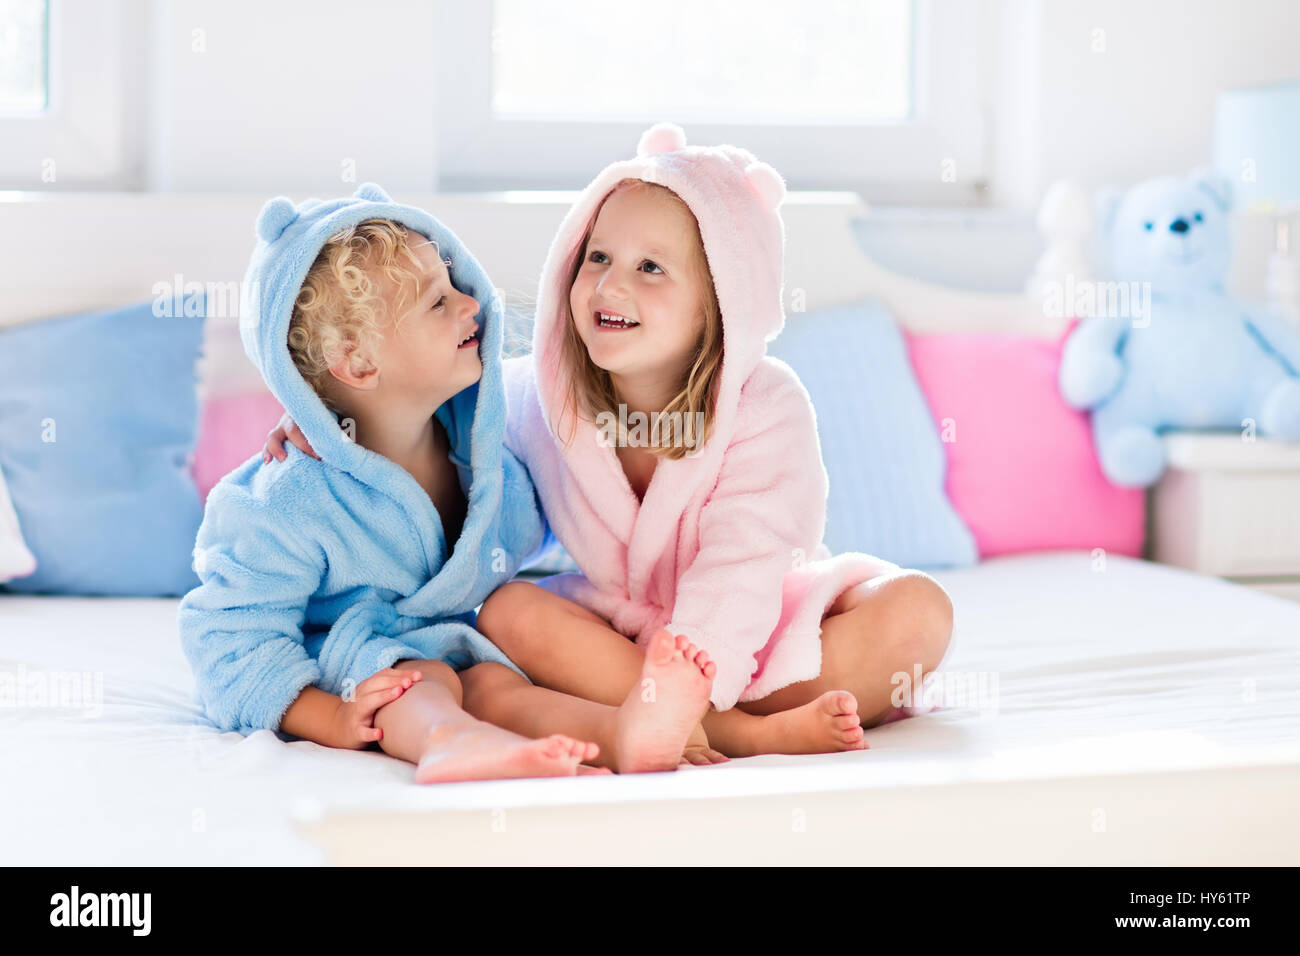 Boy And Girl Having In The Bathroom 28 Images 2 Boys In Bath Stock Photo Getty Images Boy